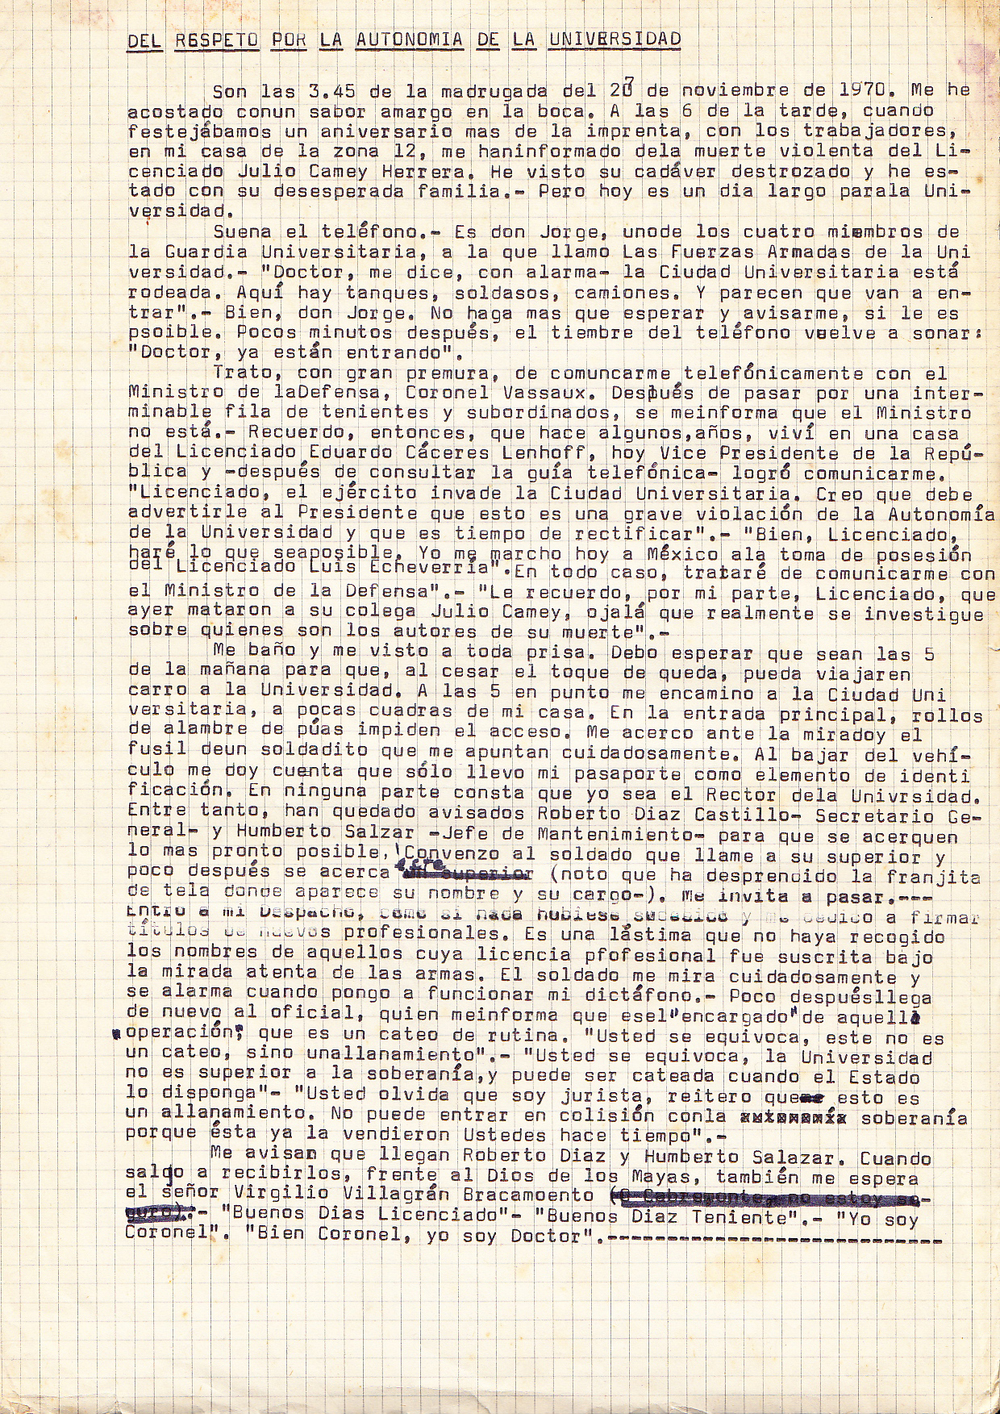 "AS TO RESPECT FOR THE UNIVERSITY'S AUTONOMY    It is 3:45 am on November 20, 1970.   I have gone to bed with a bitter taste in the mouth.  At 6 pm, while celebrating the anniversary of the University's printing press with the workers, at home in Zone 12, I was informed of the violent death of Julio Camey Herrera. I've seen hisbroken body, and I've been with his desperate family. This has been a very long day for the University.  The telephone rings. It is Don Jorge, who is one of the four members of the Guard at the University, and which I call jokingly 'The University Armed Forces '.  ""Doctor,"" he says with alarm, ""the University City is surrounded. There are tanks here, soldiers, and trucks. And they look as if they are set to go...""  ""Well, Don Jorge,"" I replied, ""We can only wait and, if possible, let me know what happens.""  A few minutes later the telephone bell rings again:  ""Doctor, they are entering.""  I try, with great haste, to communicate by telephone with the Ministry of Defense, Colonel Vassaux. After speaking through an endless line of lieutenants and subordinates, I am informed that the Minister is not available. I remember, then, that some years ago, I lived in a house belonging to Mr. Eduardo Caceres Lenhoff, today's Vice President of the Republic. I look at the telephone book and I manage to get in contactwith him.  Dr. Cuevas: ""Mr. Lenhoff, the army has invaded the University City. I must warn the President that this is a serious violation of the autonomy of the University, and that this situation needs to ne rectified.""  Mr. Lenhoff: ""Well, I'll do anything I can. I'm leaving today for Mexico for the inauguration of Mr. Luis Echeverria, the new president. In any case, I will try to communicate with the Minister of Defense. ""  Dr. Cuevas: "" I would also remind you, that yesterday, Julio Camey, a colleague of yours (a lawyer) was killed. I really hope that an enquiry will be carried out, and that we will know who are the authors of his death. ""  I shower and get dressed in a hurry. I wait until it is 5 in the morning, so that the curfew will have finished and I can travel by car to the University. At 5 I went to the University City, a few blocks from my house. At the main entrance, rolls of barbed wire are blocking access. I come before the eyes and the gun of a soldier carefully pointing at me. Getting out of the car I realize that I've only taken my passport as my only piece of identification. Nowhere is it written that I am the Chancellor of the University. Meanwhile, we have warned Roberto Diaz Castillo - General Secretary of the University, and Humberto Salazar - Maintenance Manager, to join us as soon as possible. I convince the soldier to call his superior, and soon he approaches us (I notice that the strip of cloth that carries his name and his position is torn). He invites me in. I walk into my office, as if nothing has happened. I do some work. I sign some new professional certificates. I regret, now, not having written down the name of those professionals whose certificates were signed under the watchful gaze of the guns. The soldier looks at me carefully, and looks alarmed when I switch on my Dictaphone. Soon after he, the officer, comes back, and he informs me that he ""is in charge of this 'operation', that this is a routine search.""  Dr. Cuevas: ""You are mistaken, this is not a search, but a raid"".  Officer: ""You are mistaken. The University is not superior to sovereignty, and its premises can be searched when the State wants. ""  Dr. Cuevas: ""You forget that I am a lawyer. I reiterate that this is a raid. Also, this action is not 'clashing' with our 'State sovereignty', because you (the army) sold it some time ago. ""  I was told that Roberto Diaz and Humberto Salazar have arrived. When I go to meet them, I find that Mr. Virgilio Villagrán Bracamonte (Chief of the Army's Public Relations) is also waiting.  We say goodbye to the officer:  Officer: ""Good Morning Licenciado (BA)""  Dr. Cuevas: ""Good morning Lieutenant""  Officer: ""I am a Colonel ""  Dr. Cuevas:"" Well Colonel, I'm a Doctor (PHD)... """